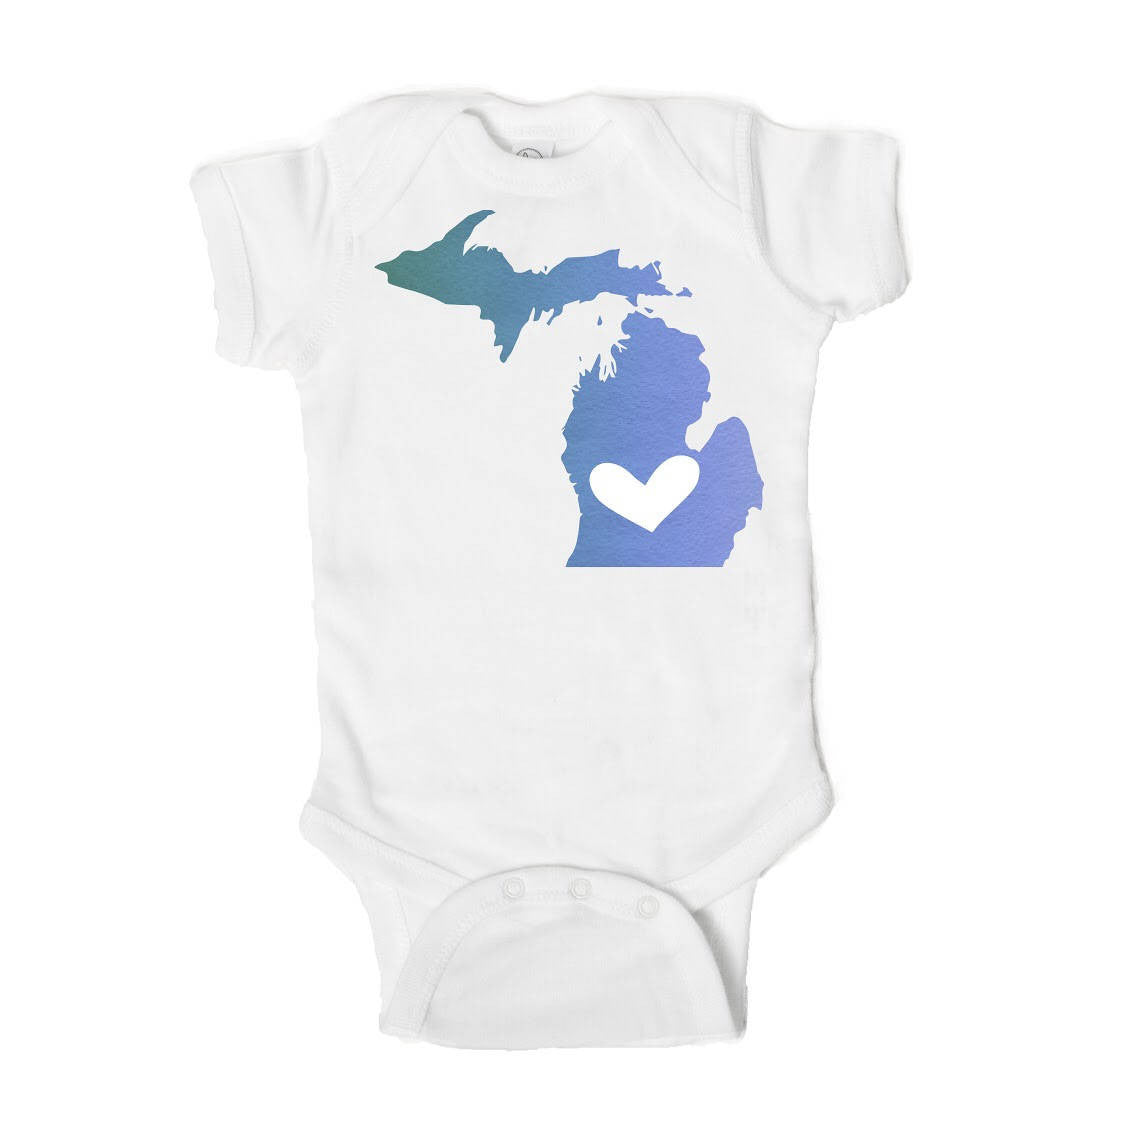 Michigan State Love Baby Onesie